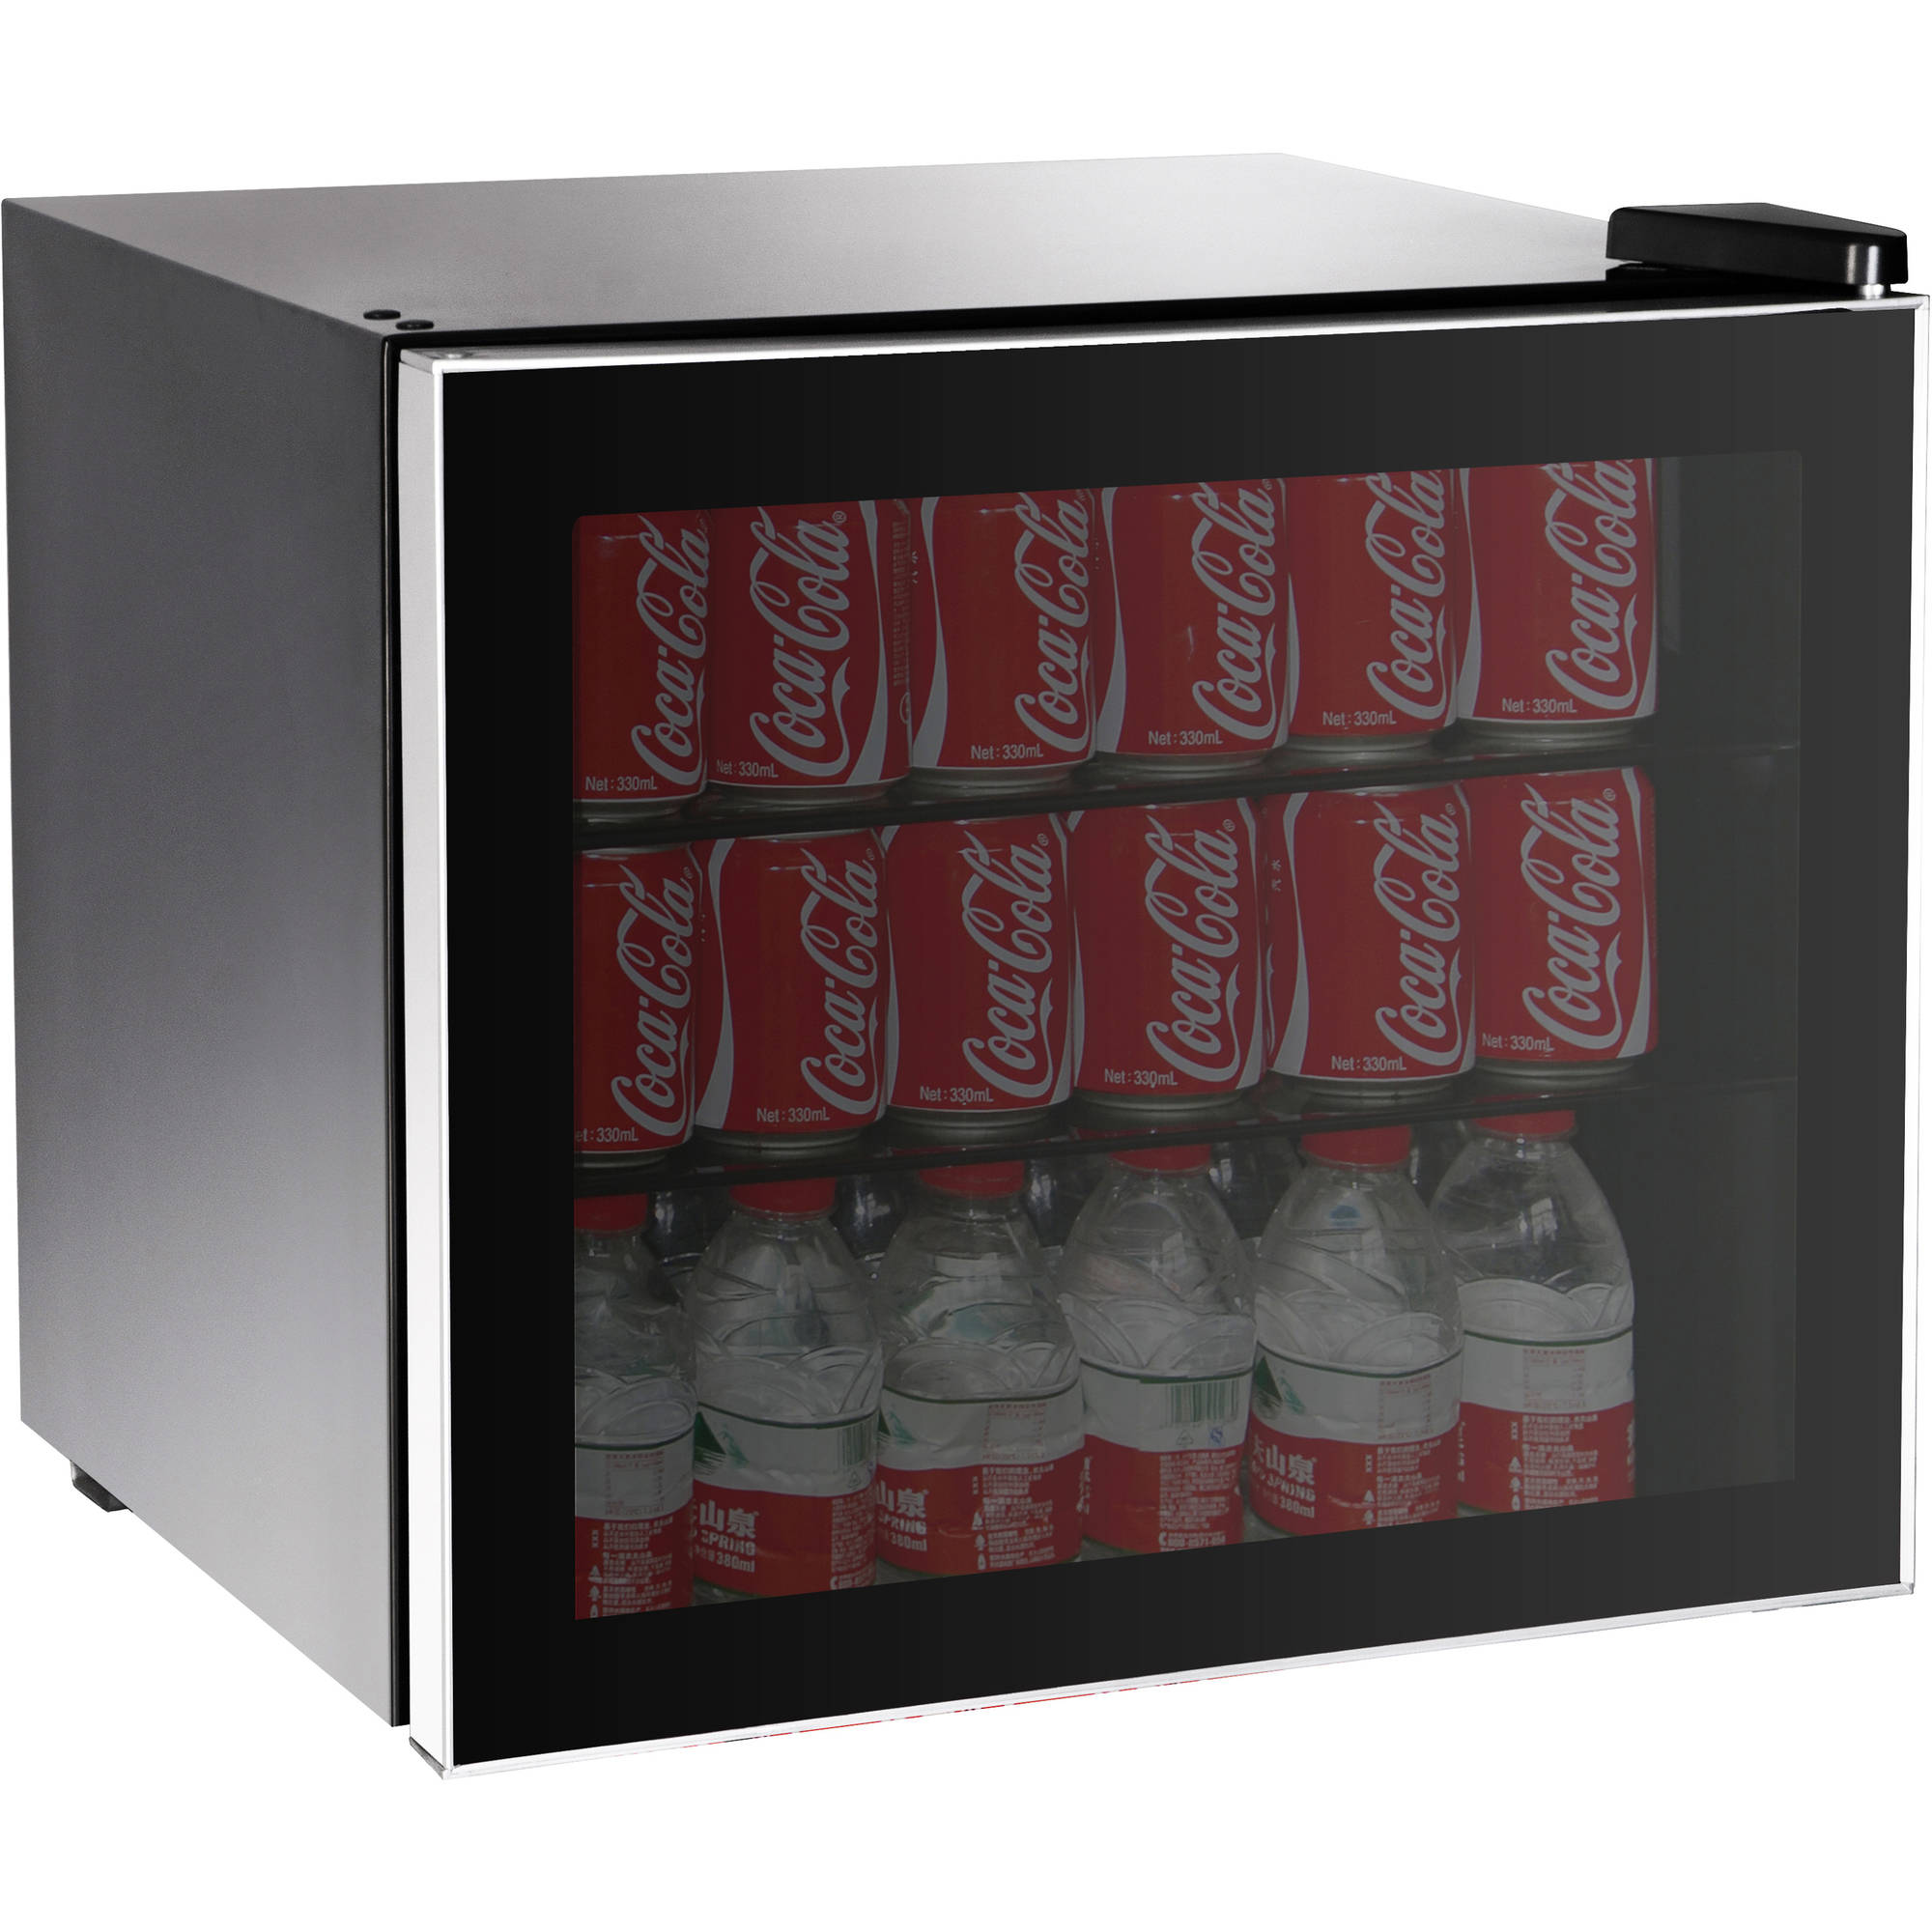 Igloo 70-Can or 14-Bottle Adjustable Beverage Center with Silver Trim